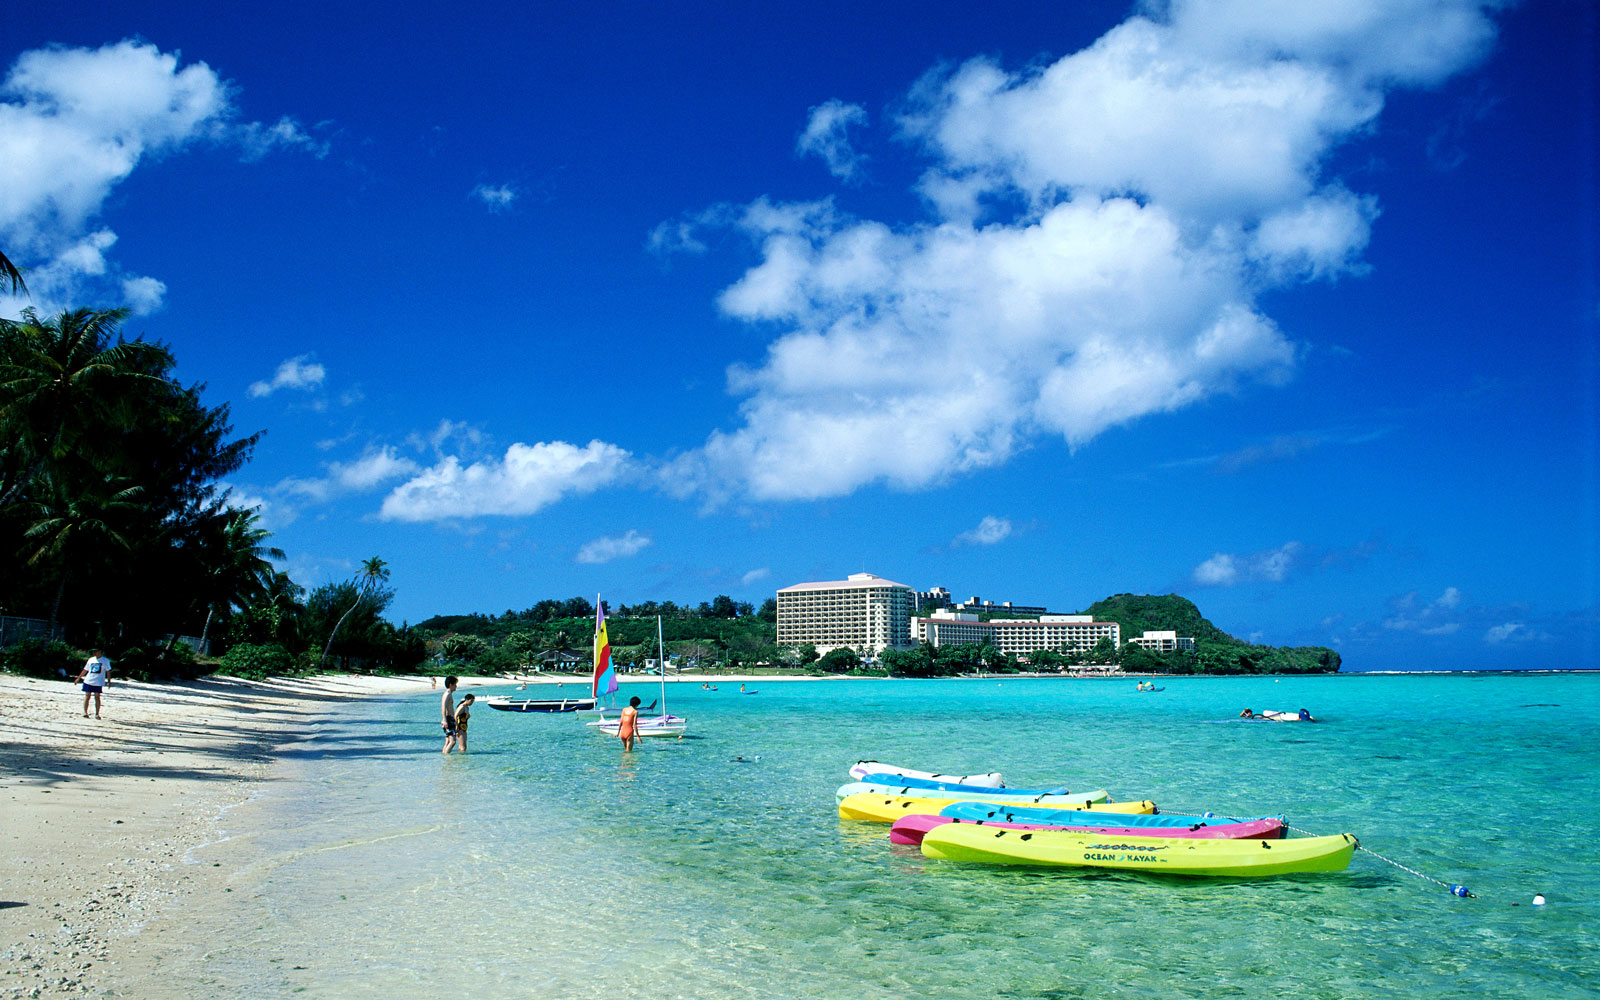 Guam Tourists Continue to Arrive Despite Nuclear Threat